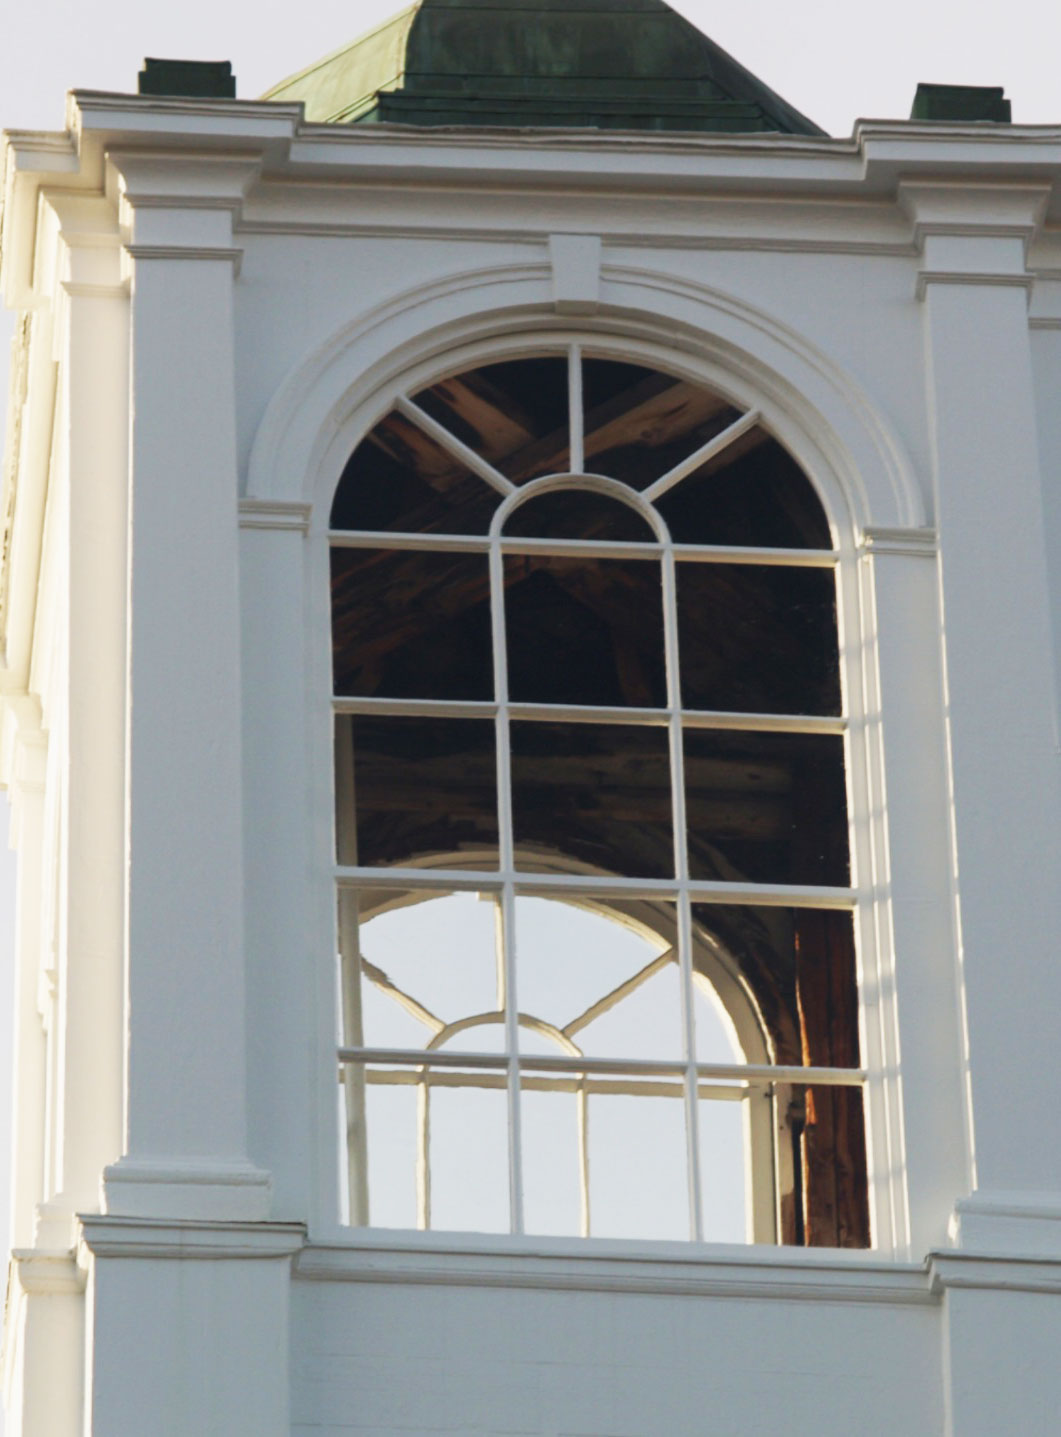 "Sustainability - Your original windows have been in service for as many years as the age of your house or building–50 or even 150 years.Restored original windows can last another 50 years before needing another restoration. That longevity makes your historic house and windows extremely ""green"" on any sustainability scale."